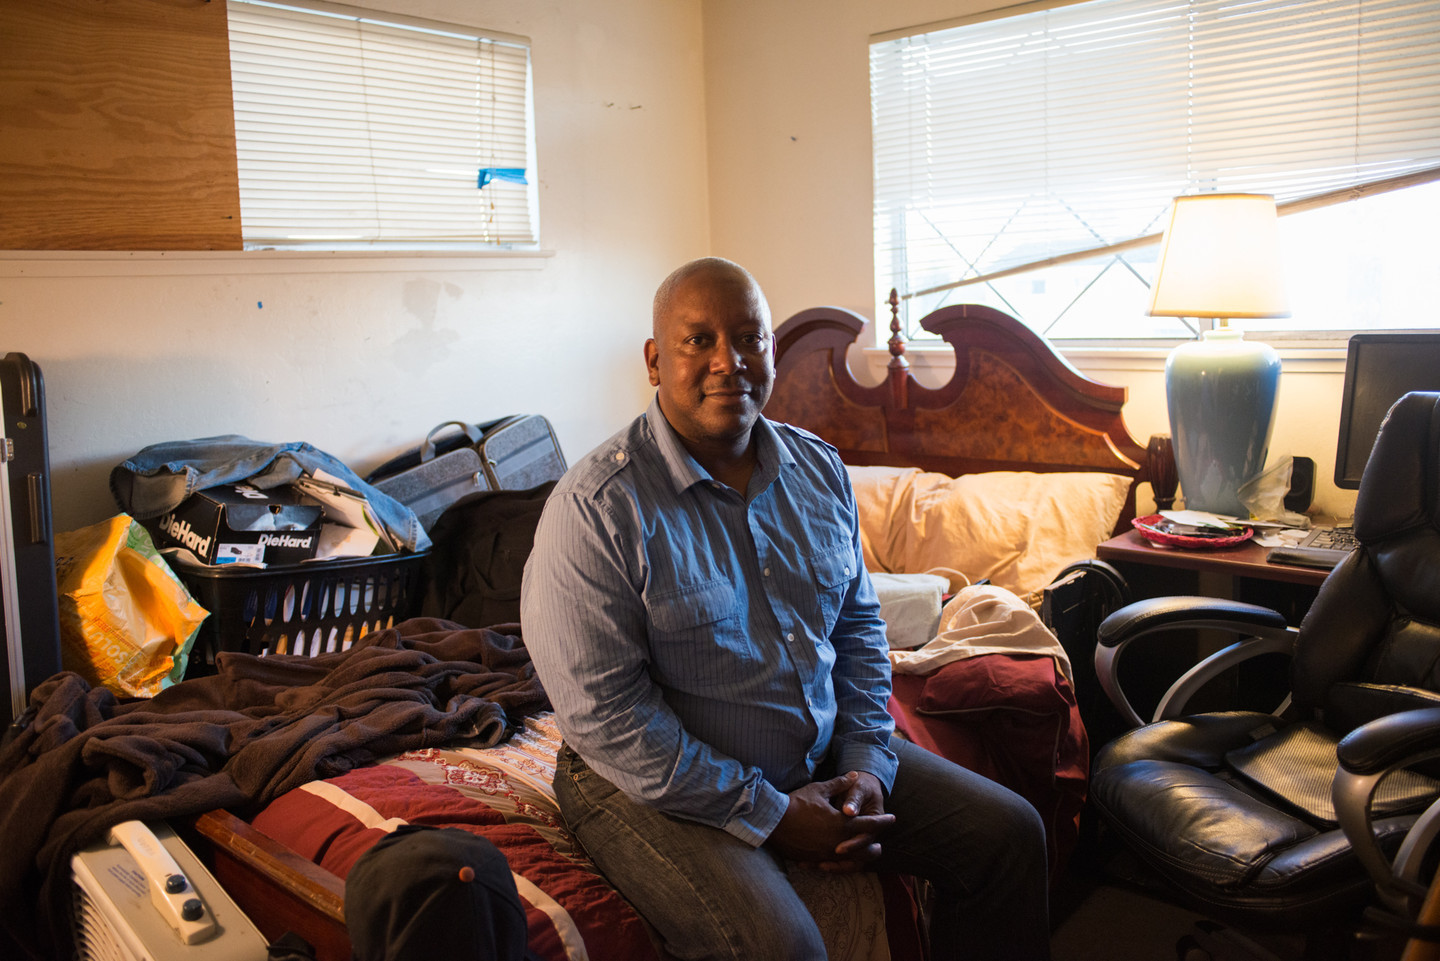 Michael Johnson at home in San Jose. Working full time as a security guard, he is unable to afford more than a room to rent in a friend's apartment.